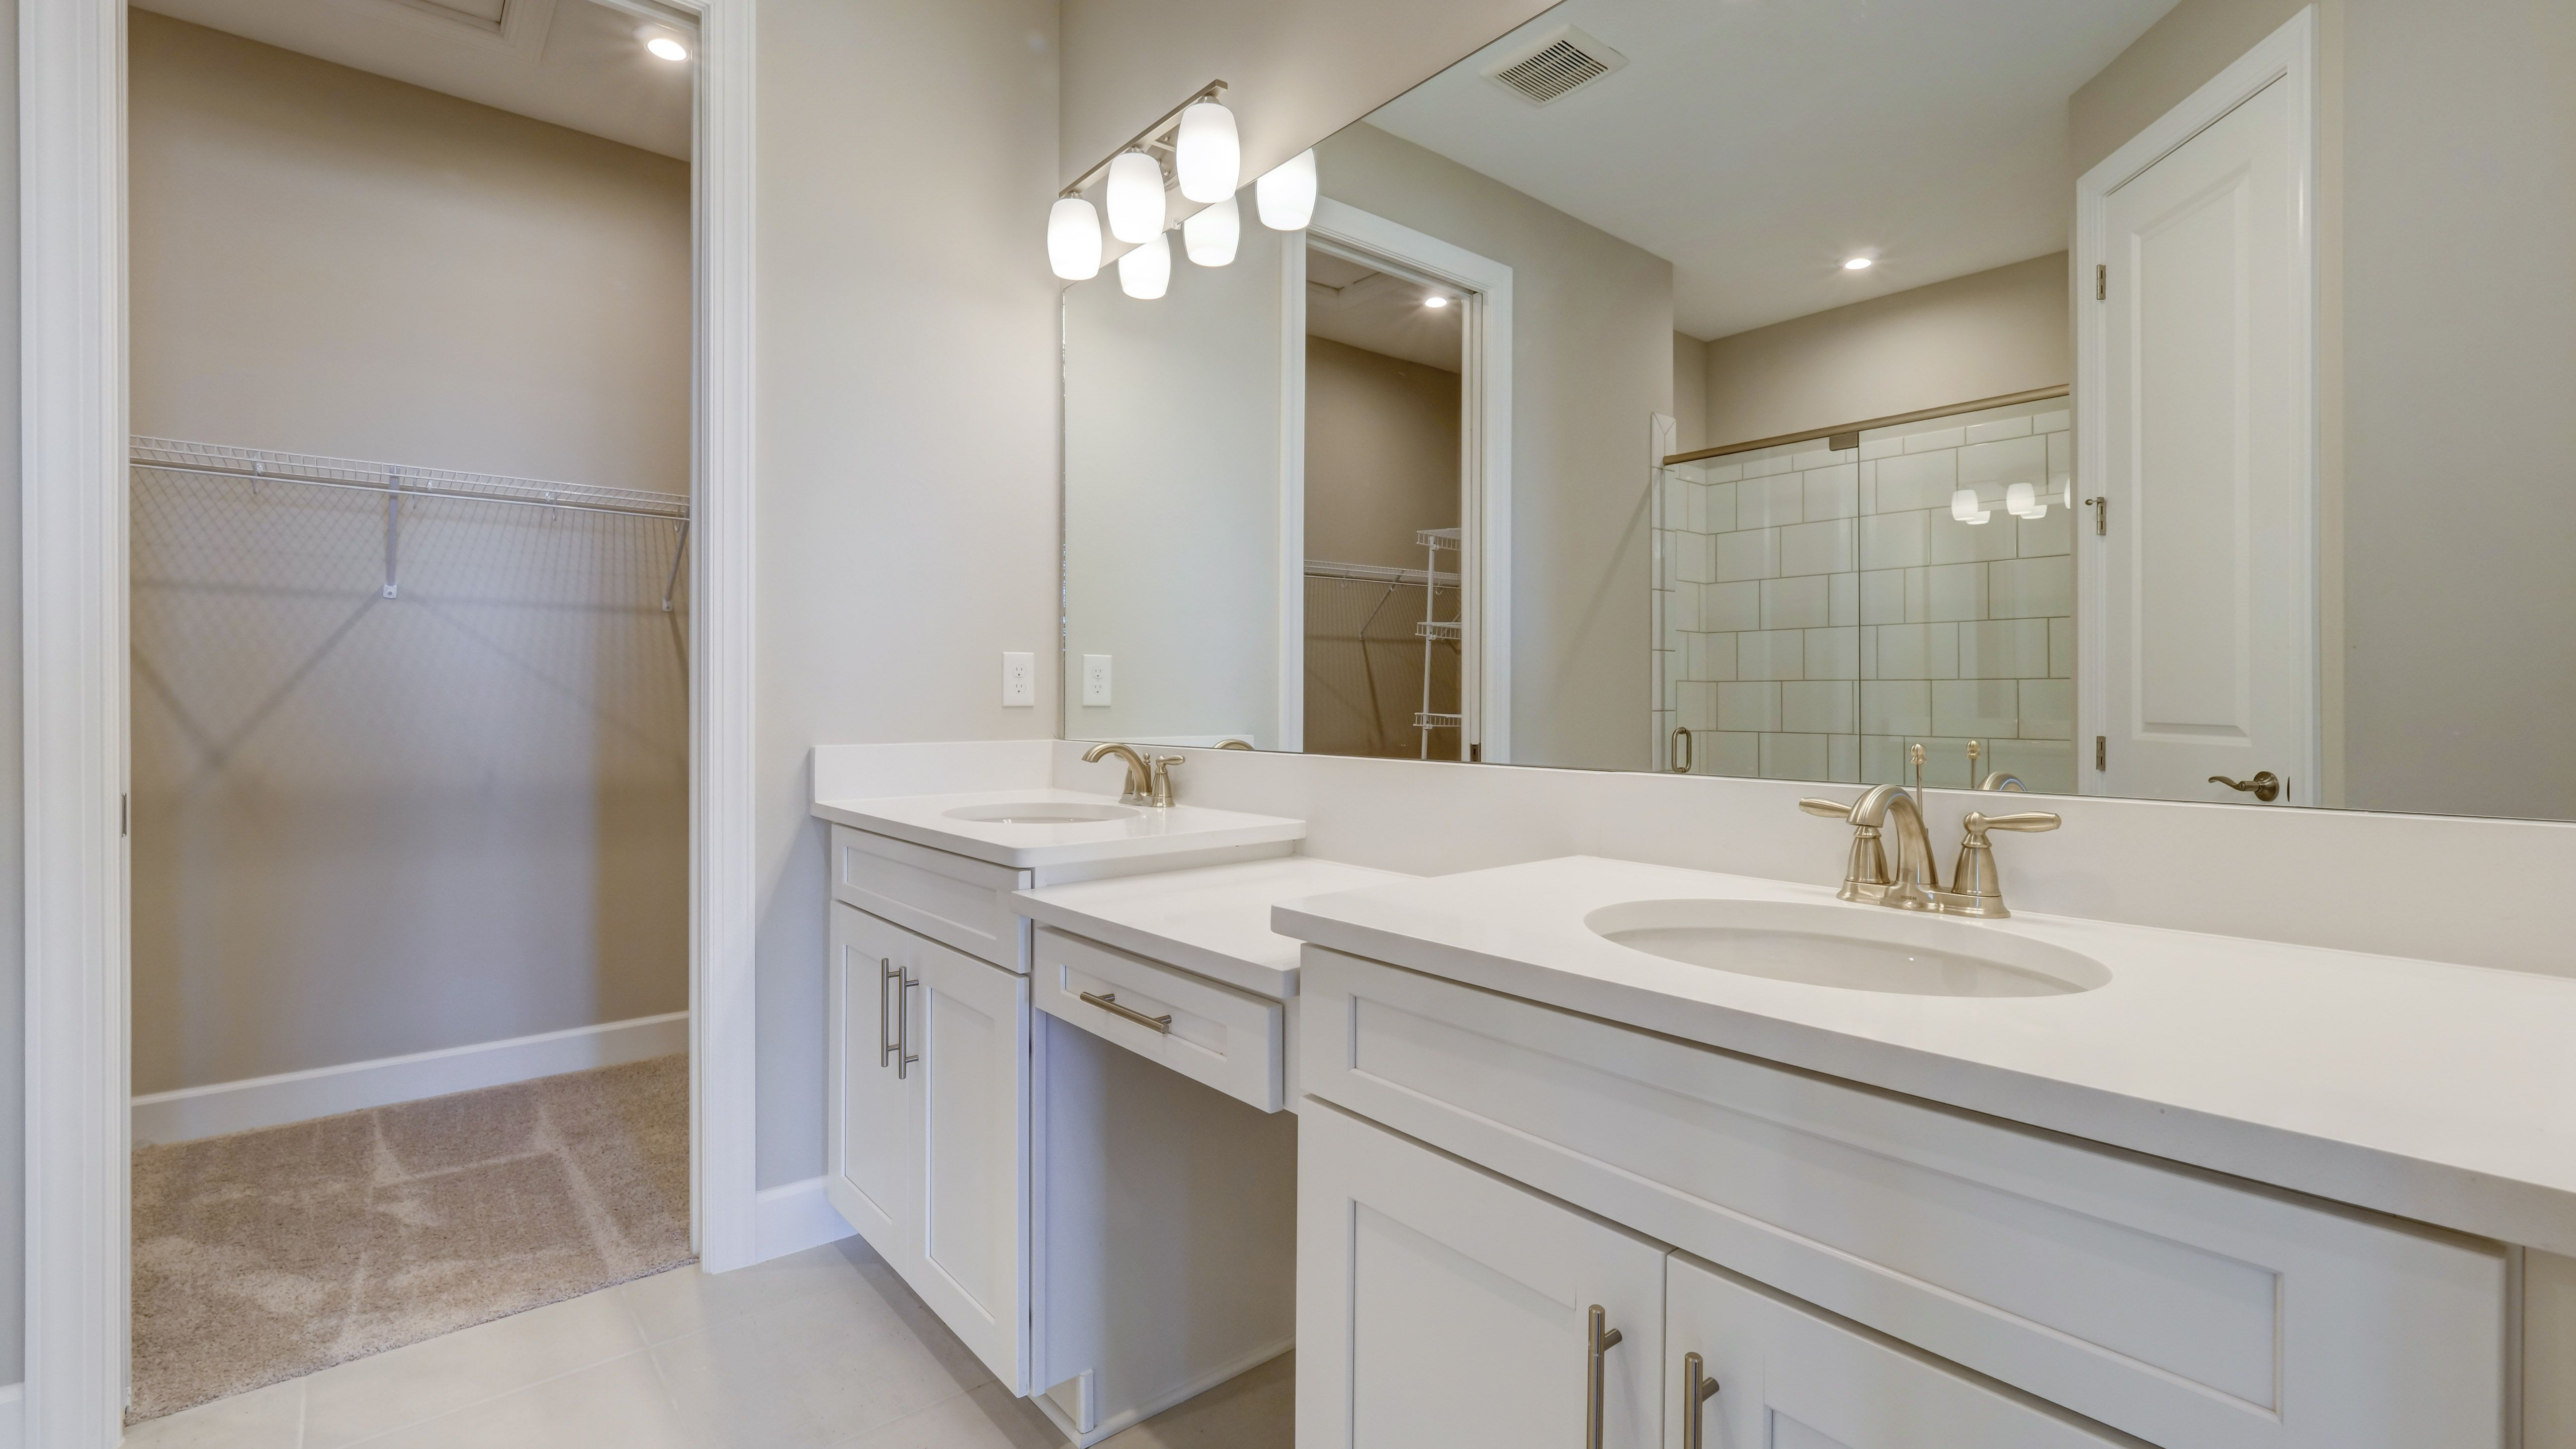 Bathroom featured in the Mazzano By Taylor Morrison in Naples, FL